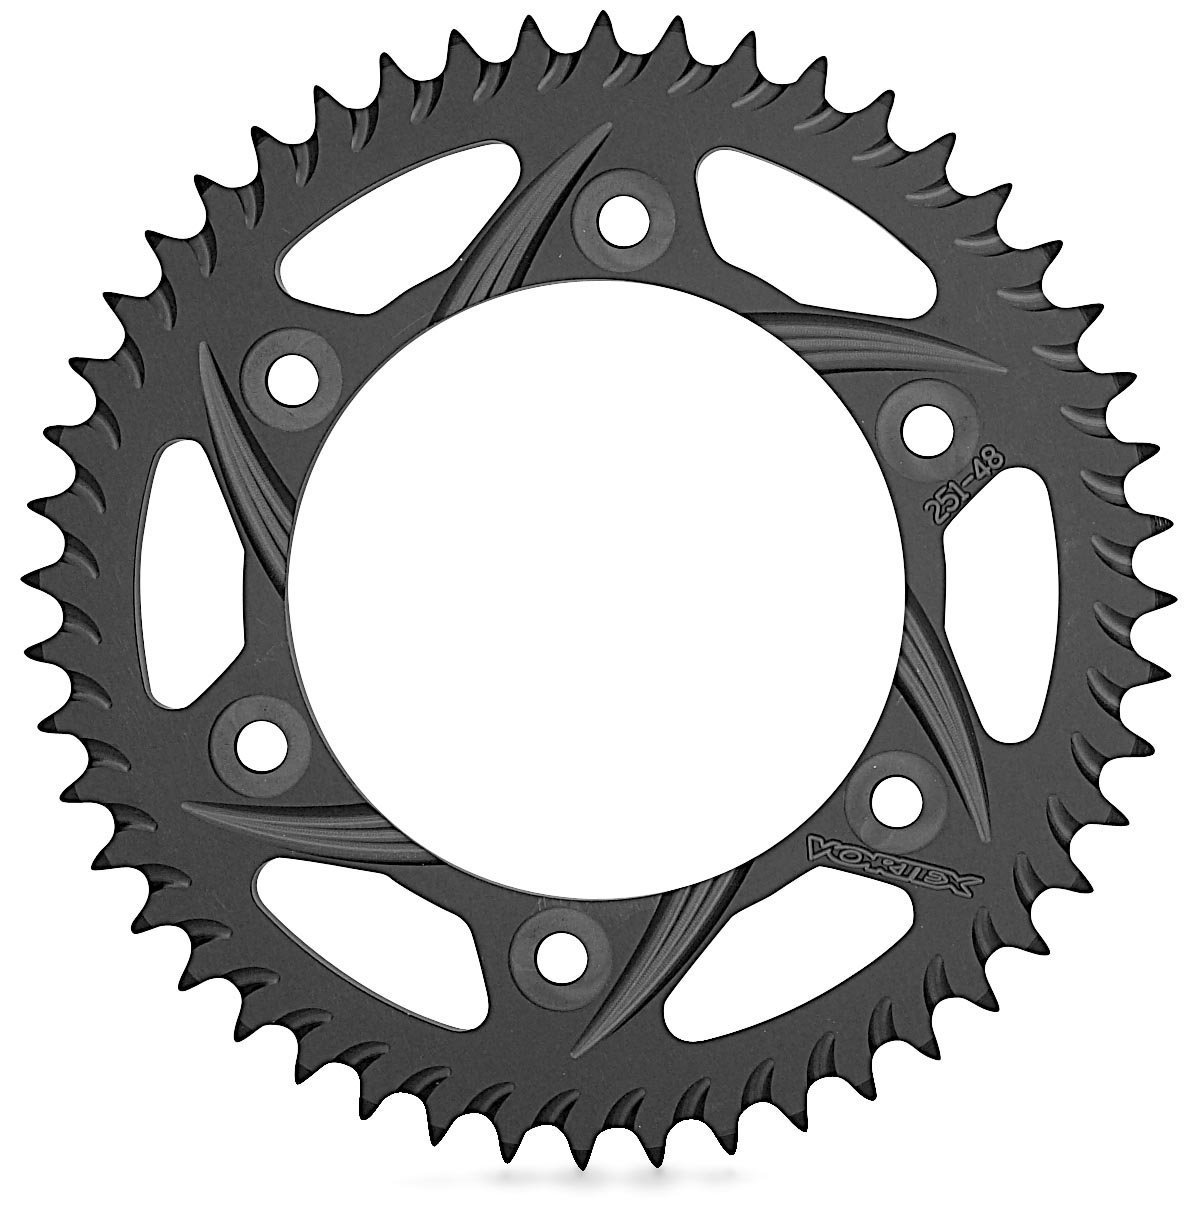 Vortex 232K-48 Solid Black 48-Tooth Rear Sprocket